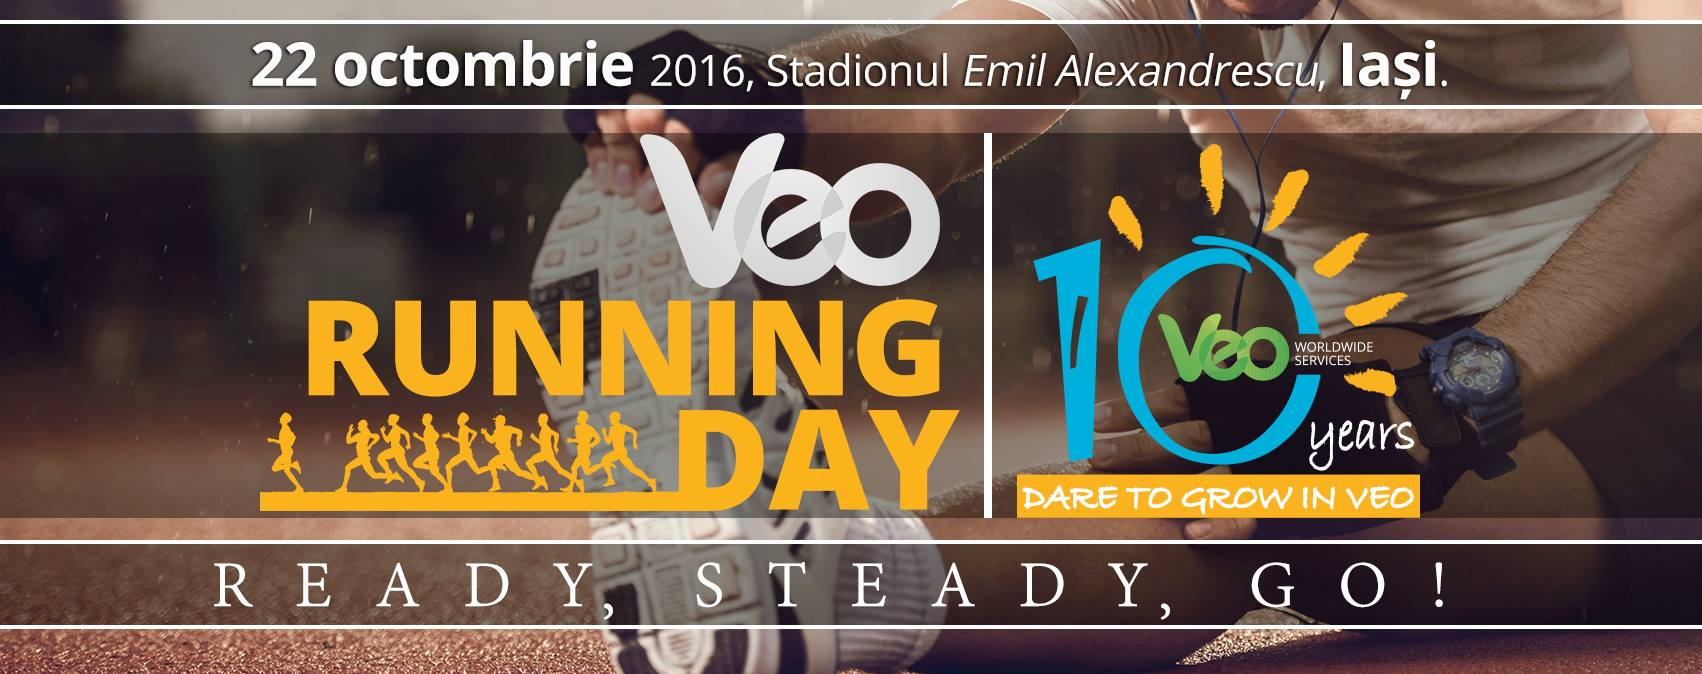 veo-running-day